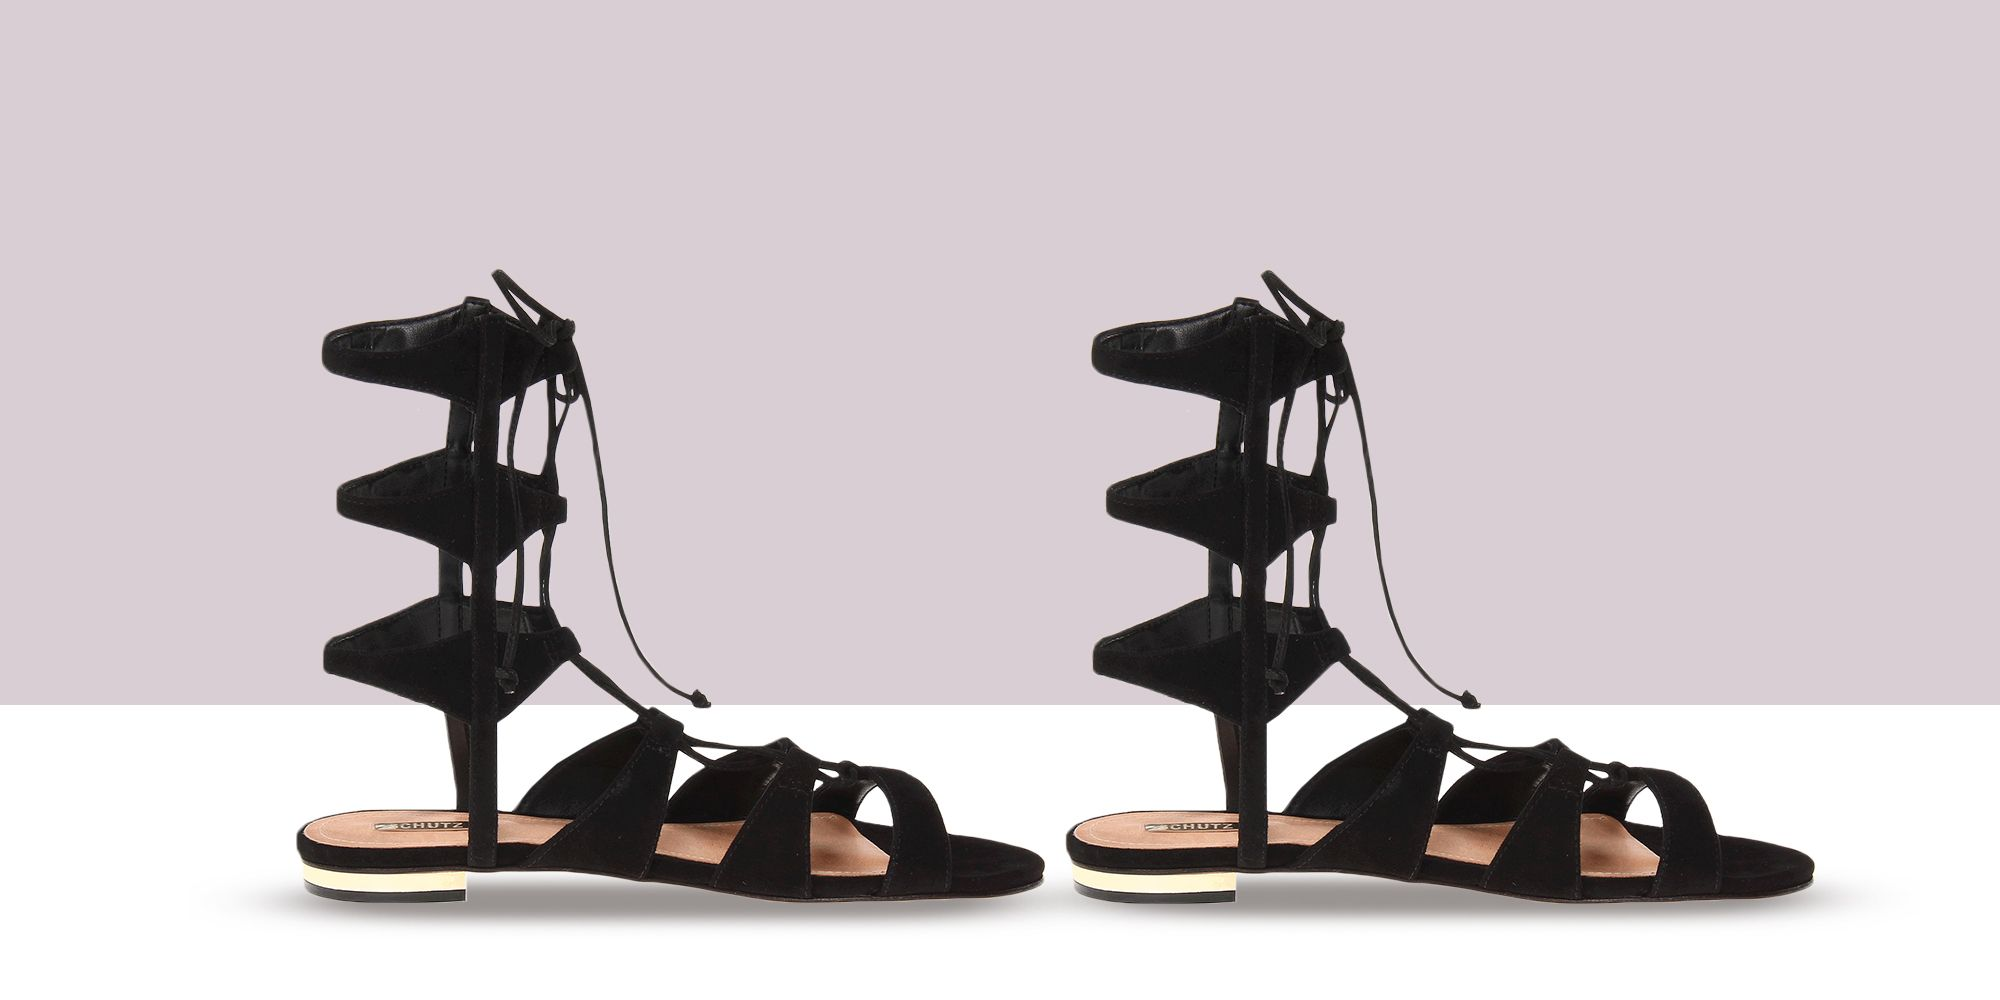 Lace Up Gladiator Sandals and Heels